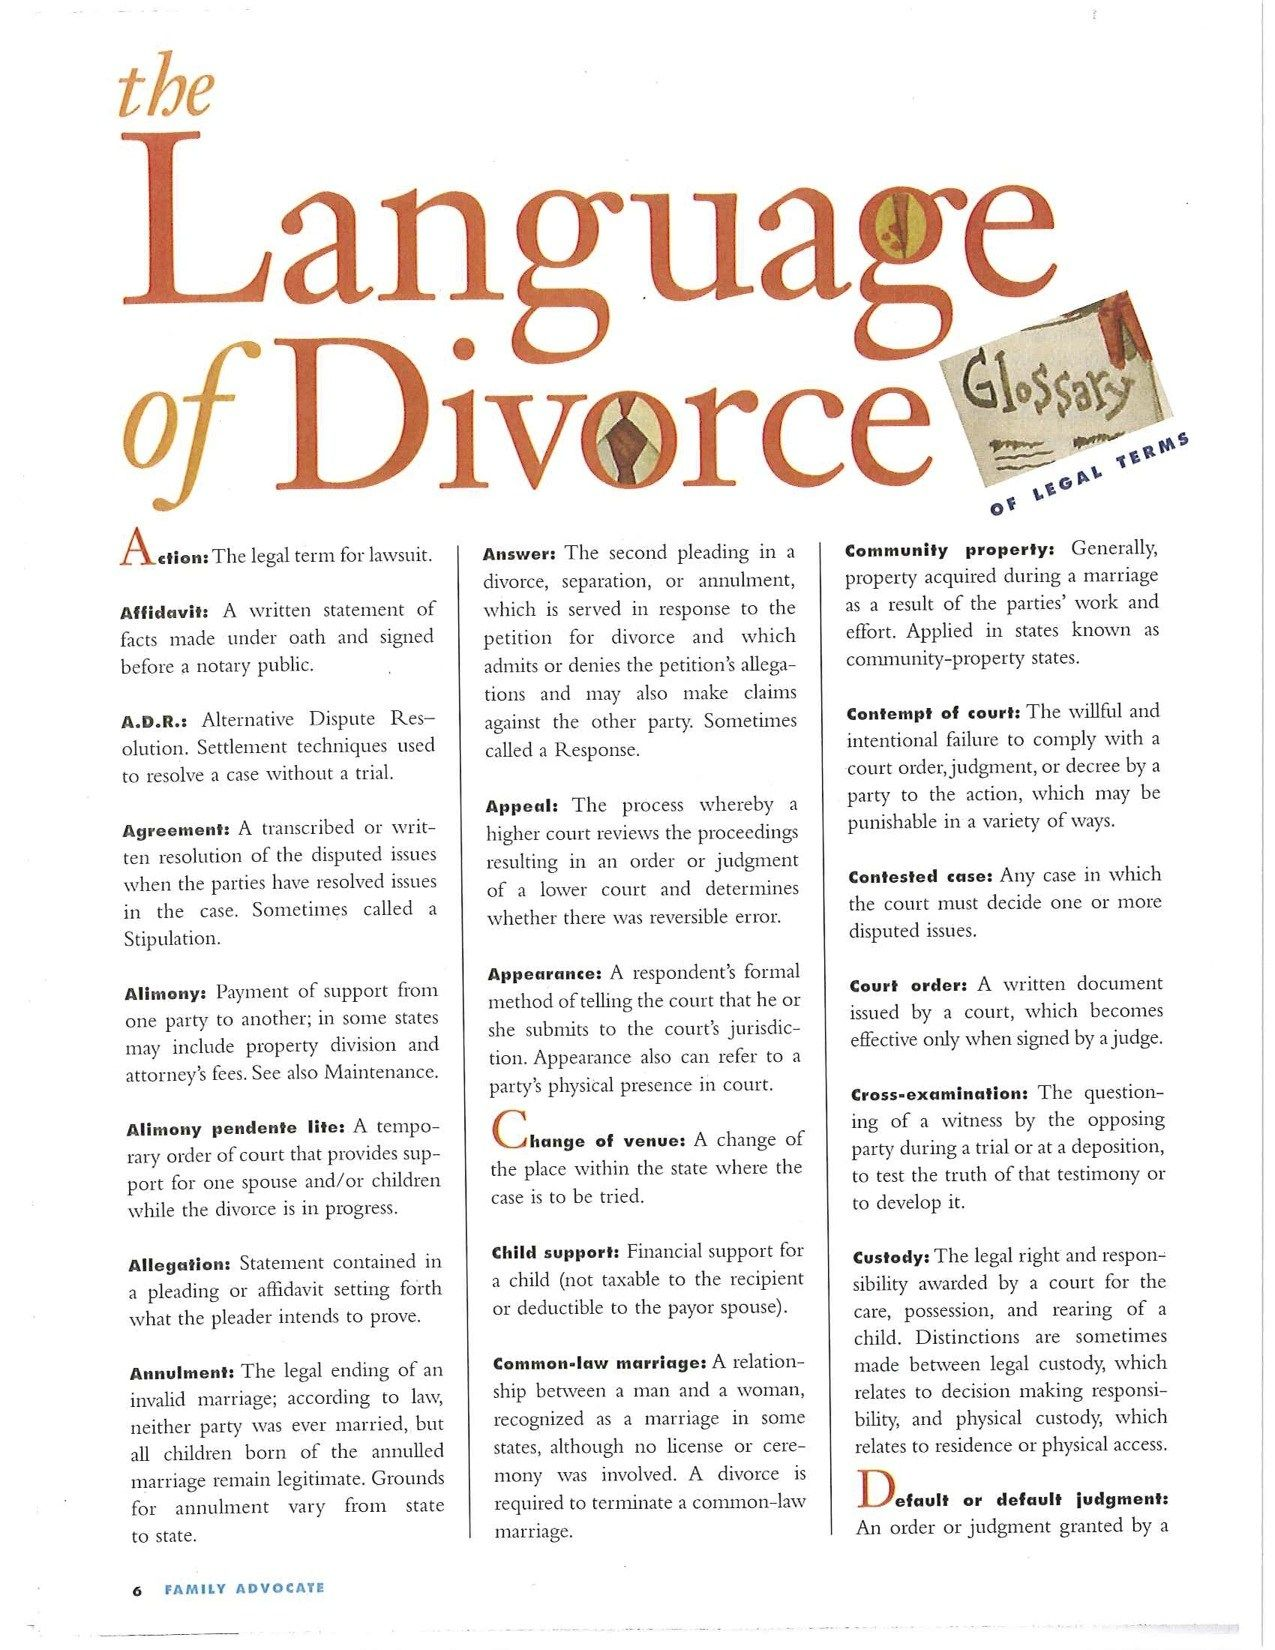 Legal Divorce Terms You Need to Know. A Handy Guide. - Round and Round Rosie